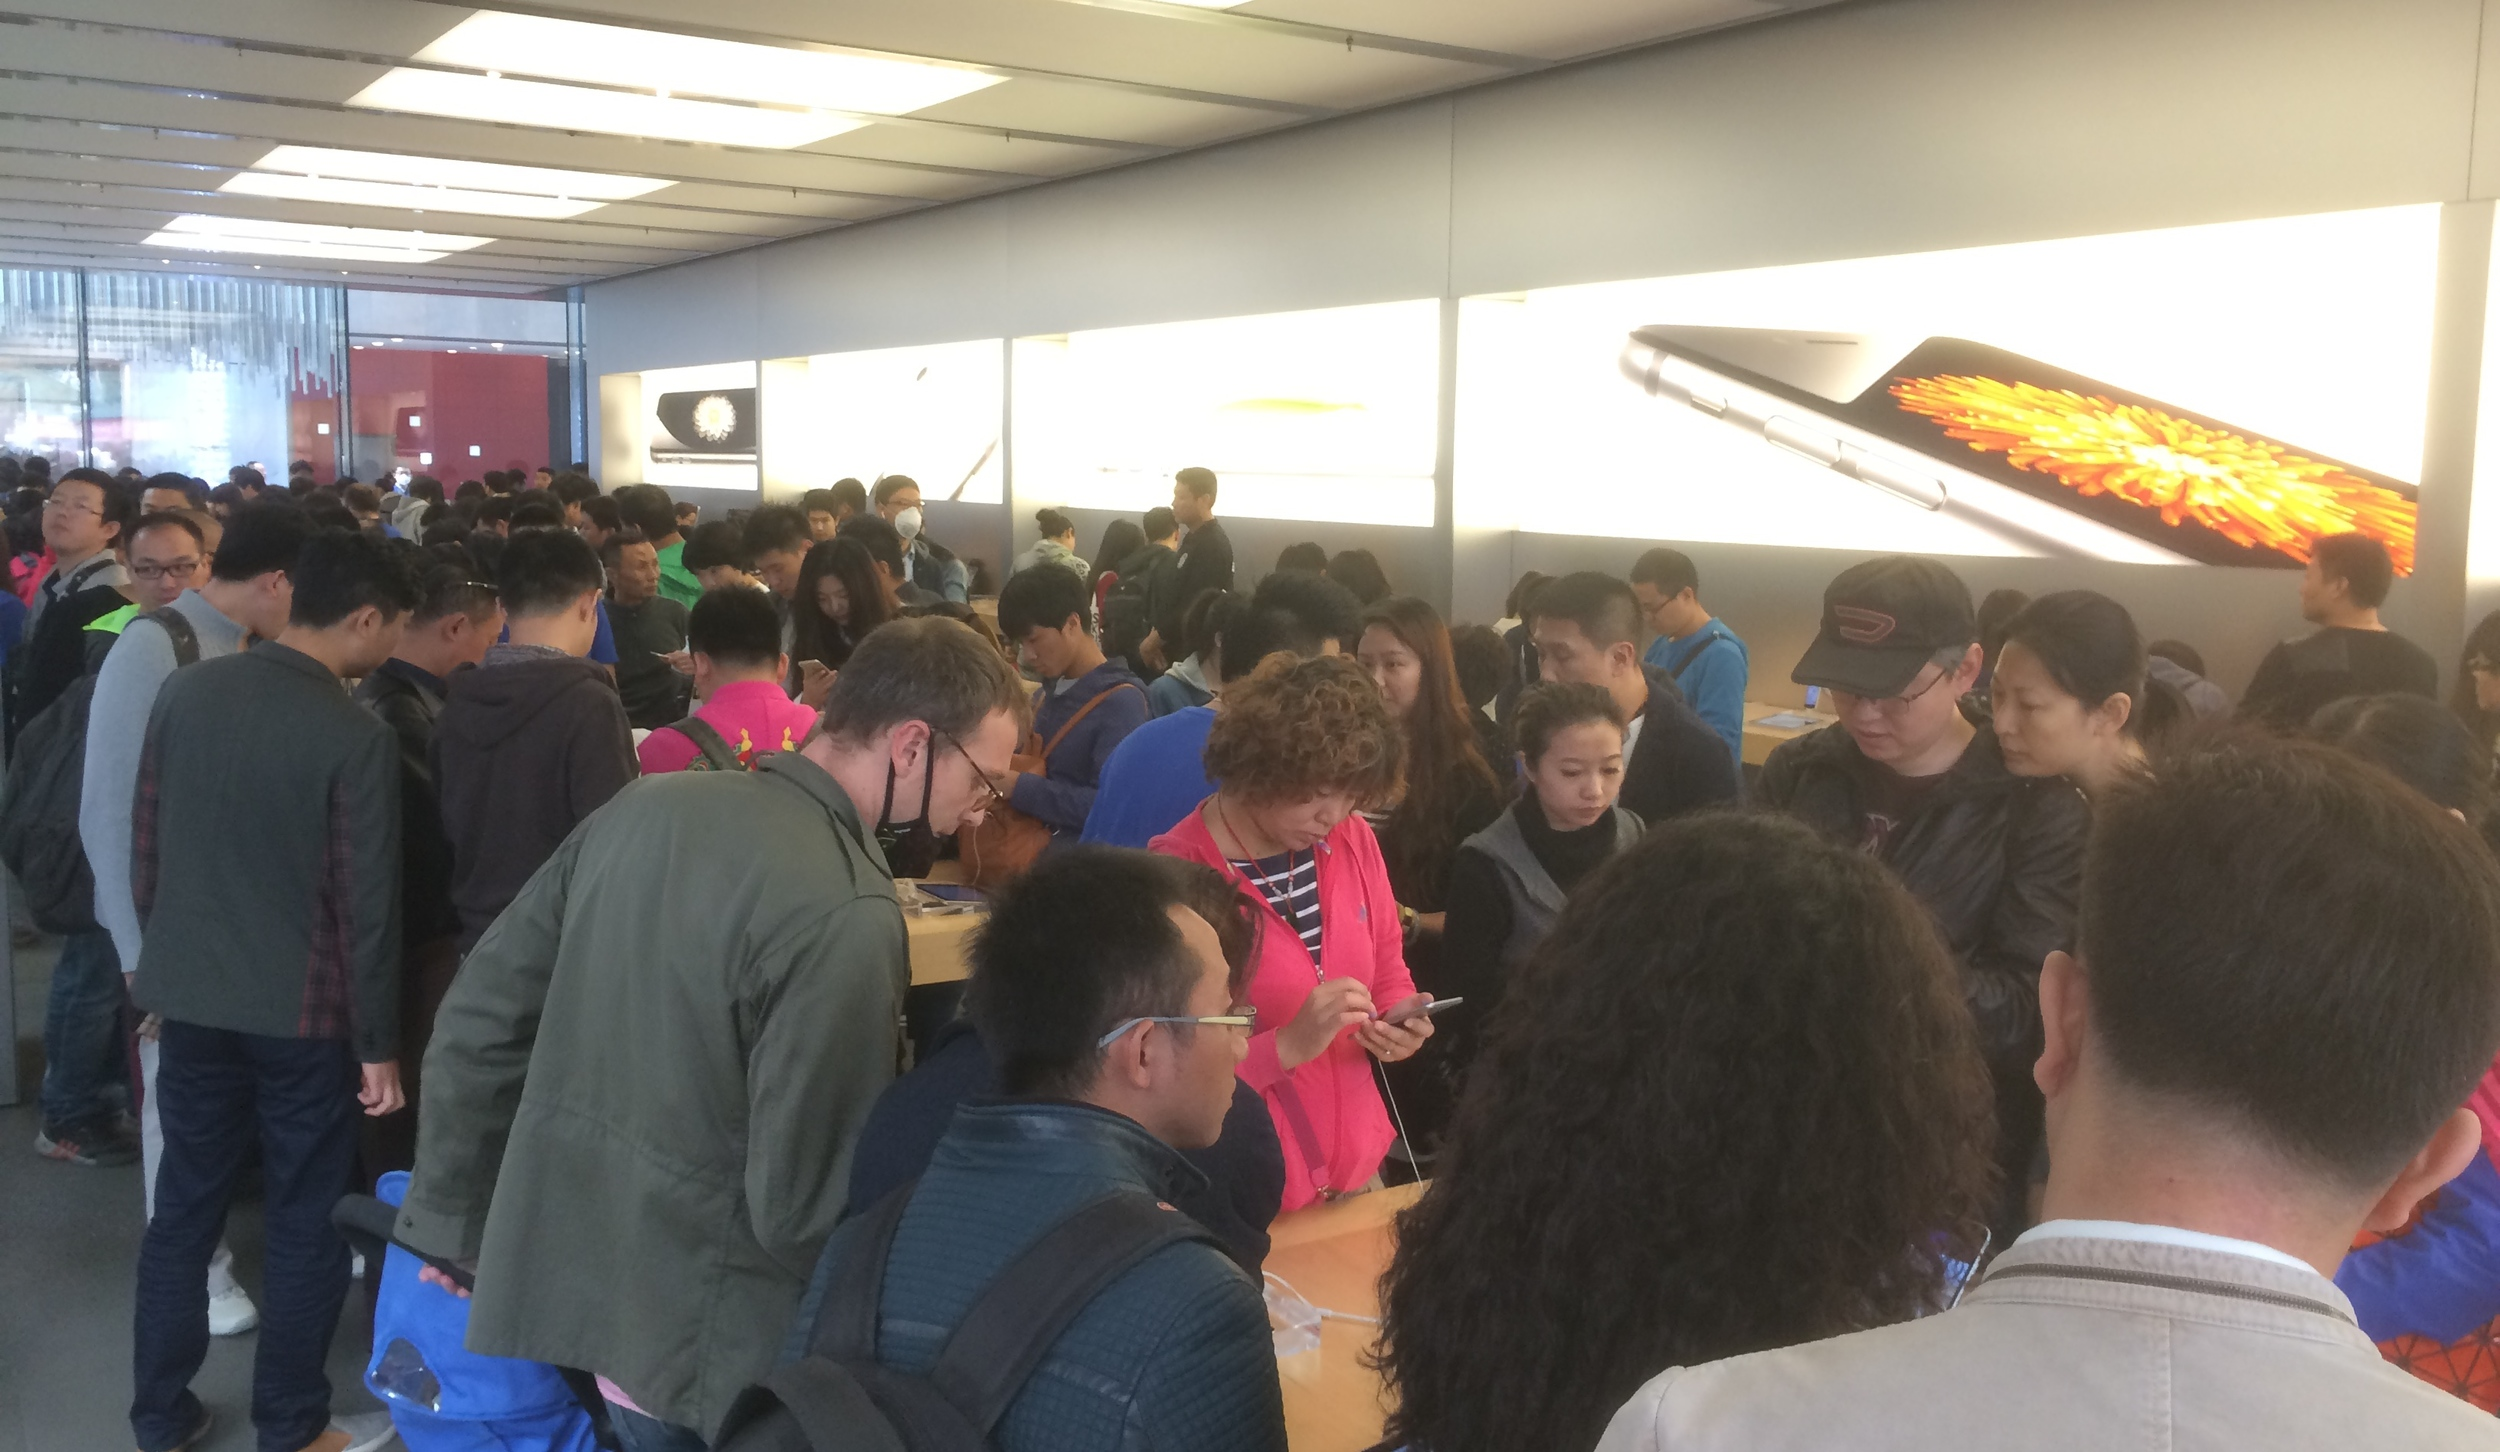 popped into the apple store today....this was the crowd checking out the recently released iPhone 6